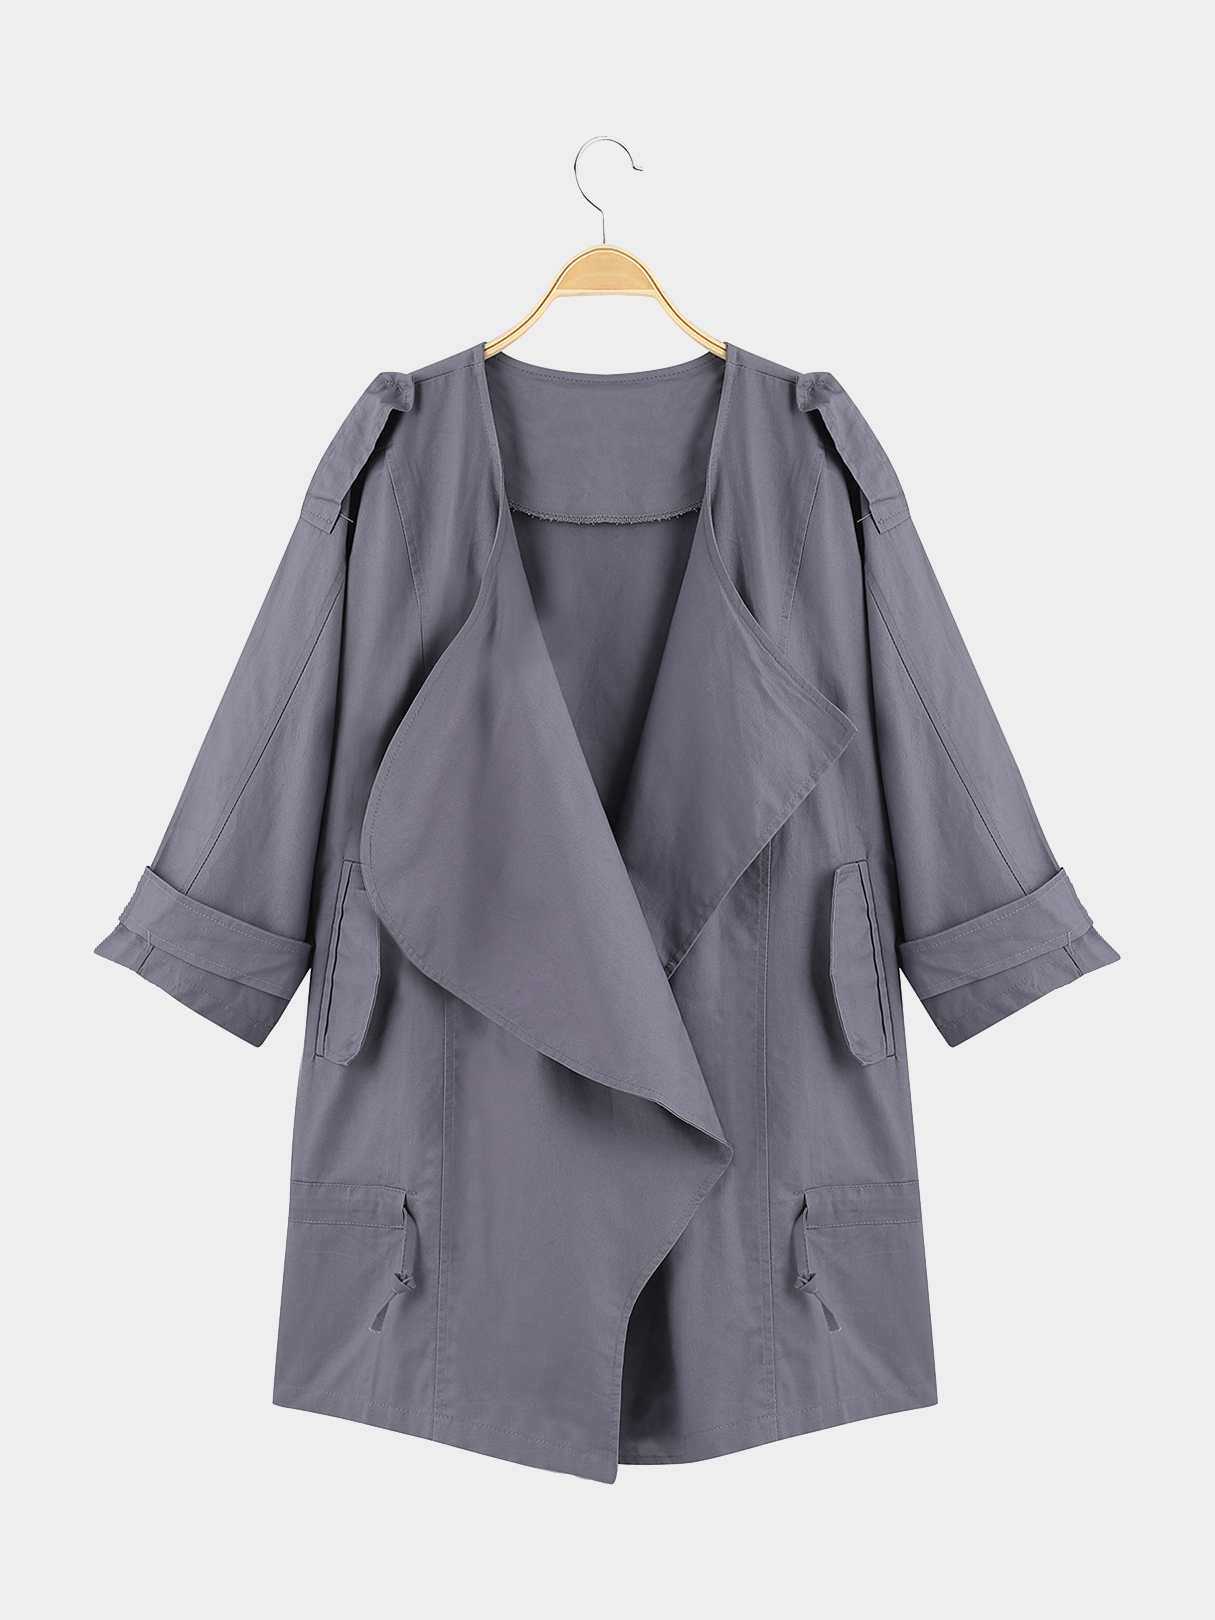 Classics Collection Solid Grey 3/4 Sleeve Waist Tie Trench Coat